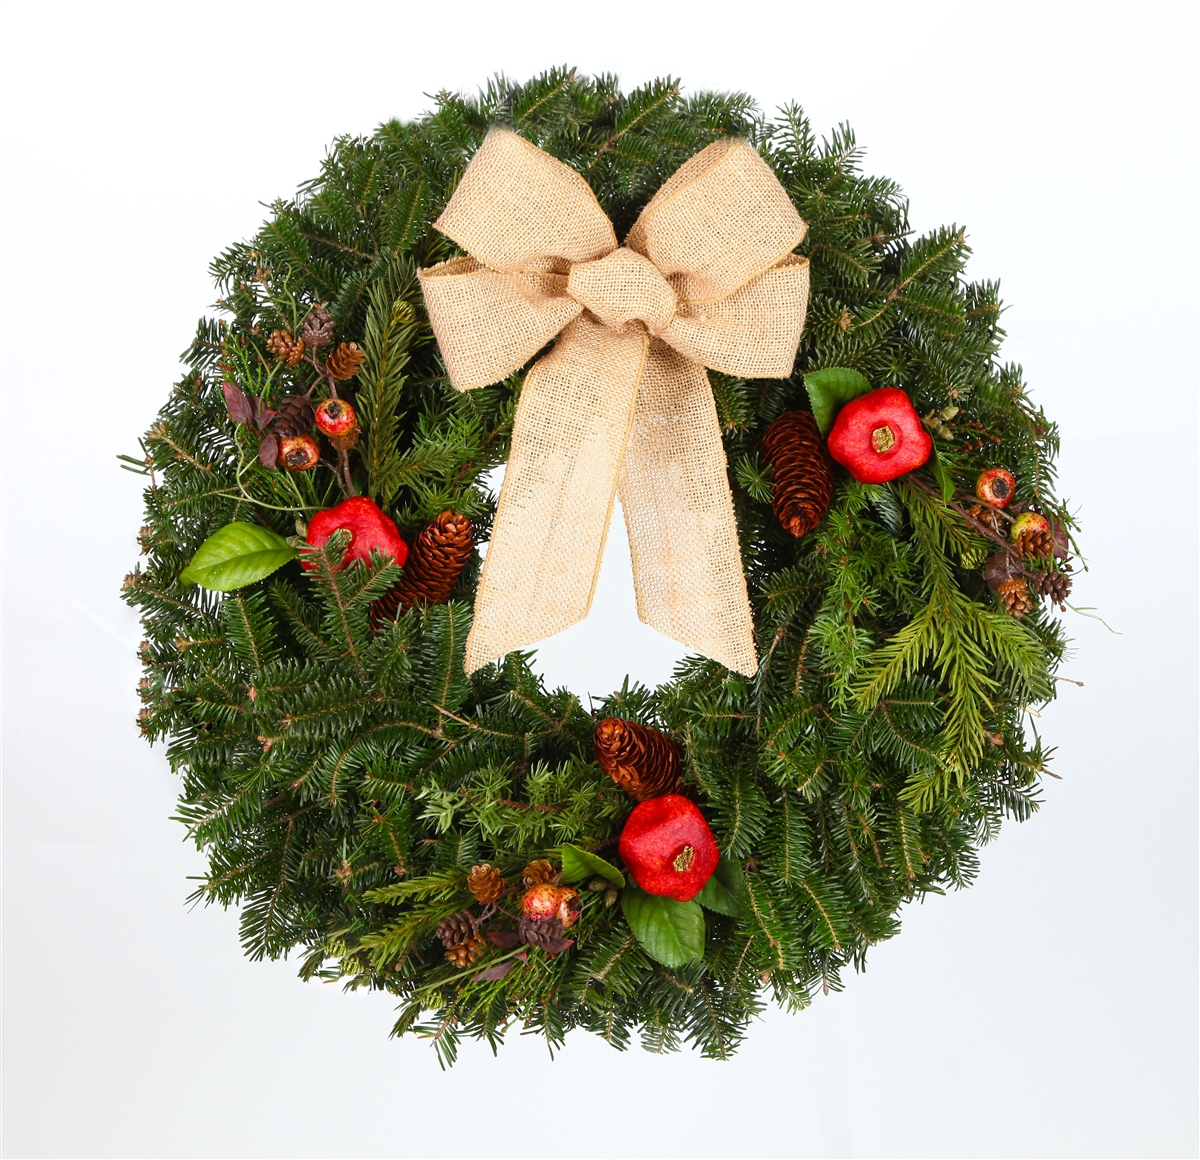 Christmas Wreath Images Free.24 In Country Real Fraser Fir Christmas Wreath Fresh Cut Live